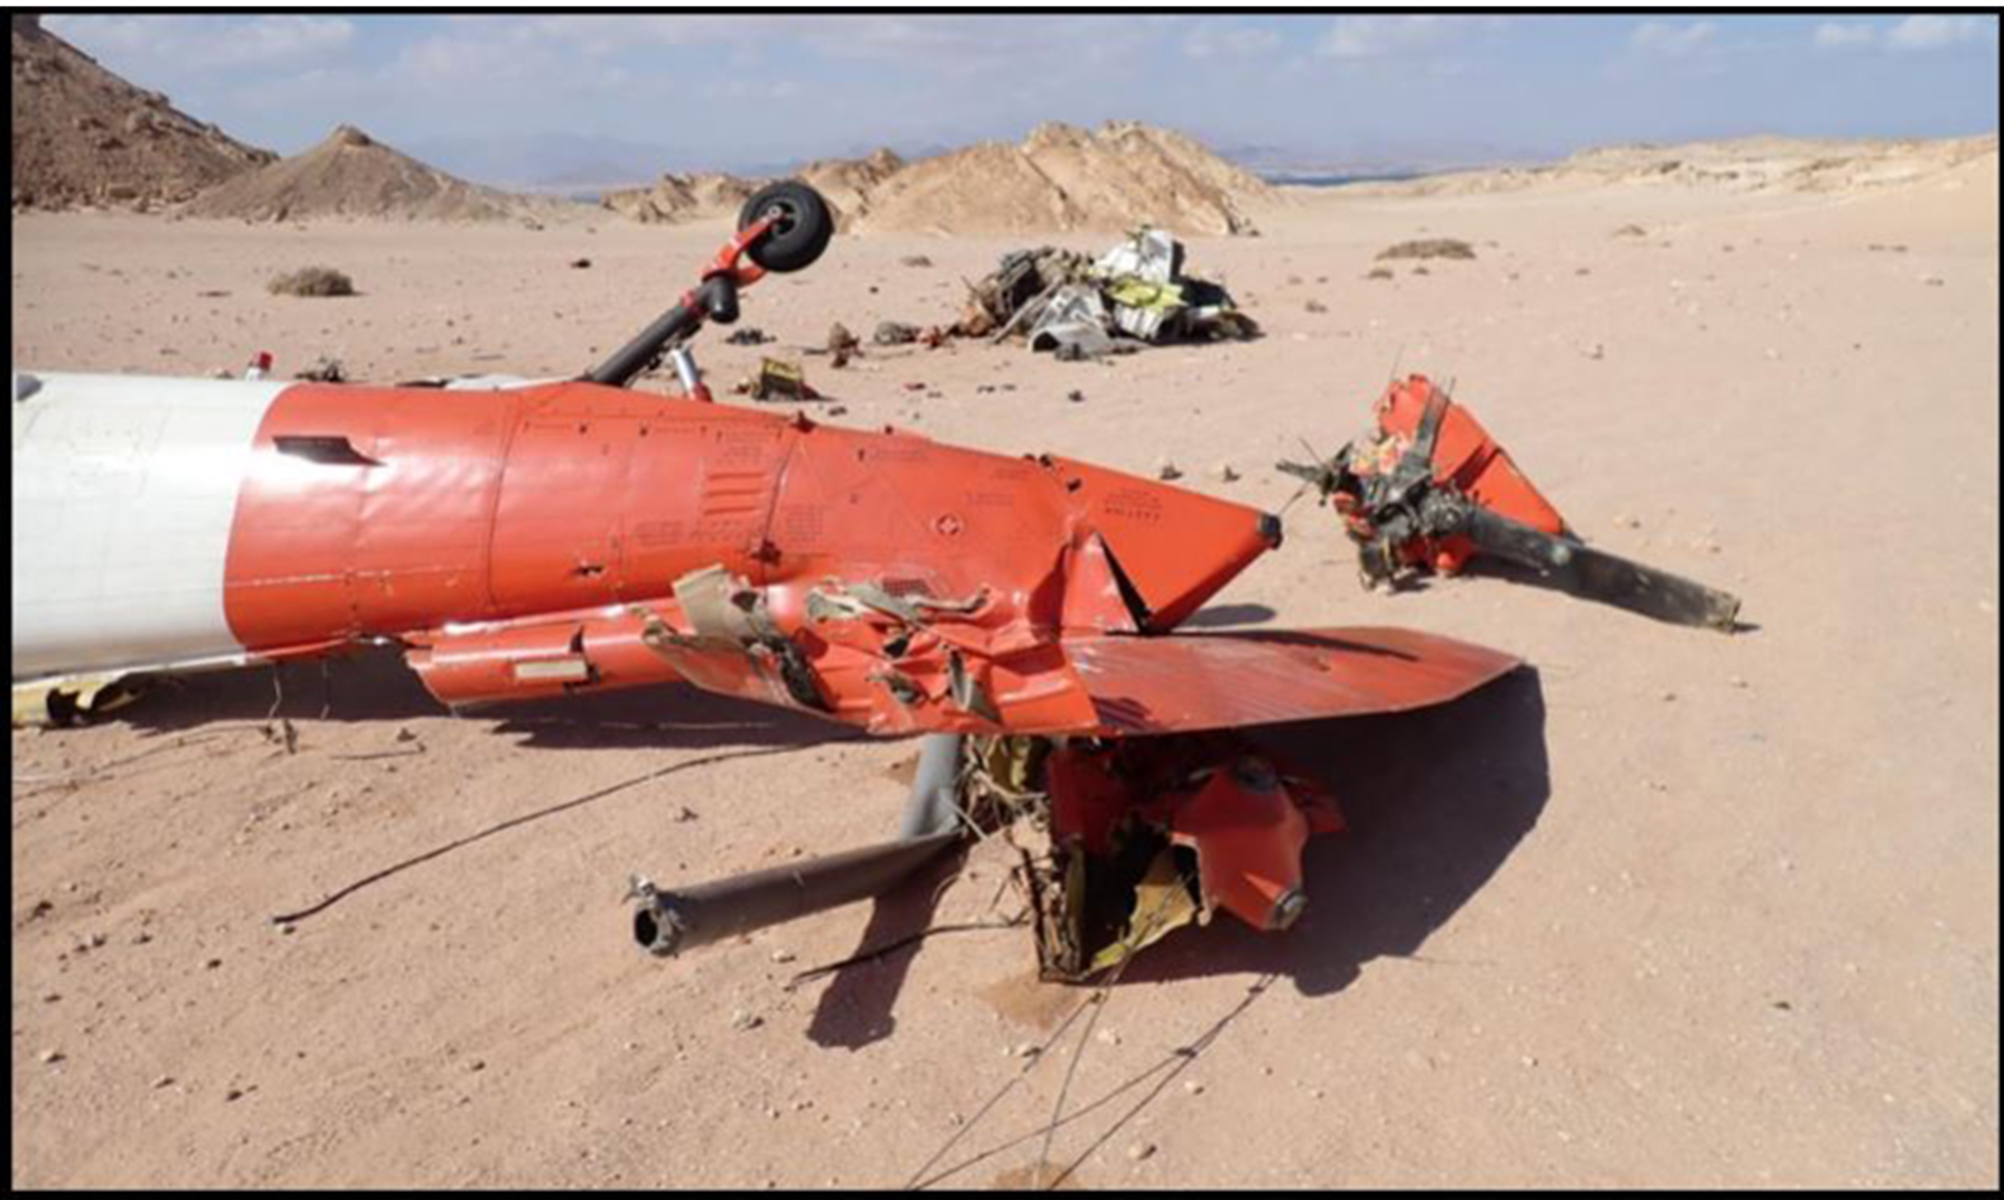 Documents Reveal New Details About Sinai Peninsula Crash That Killed 5 Soldiers